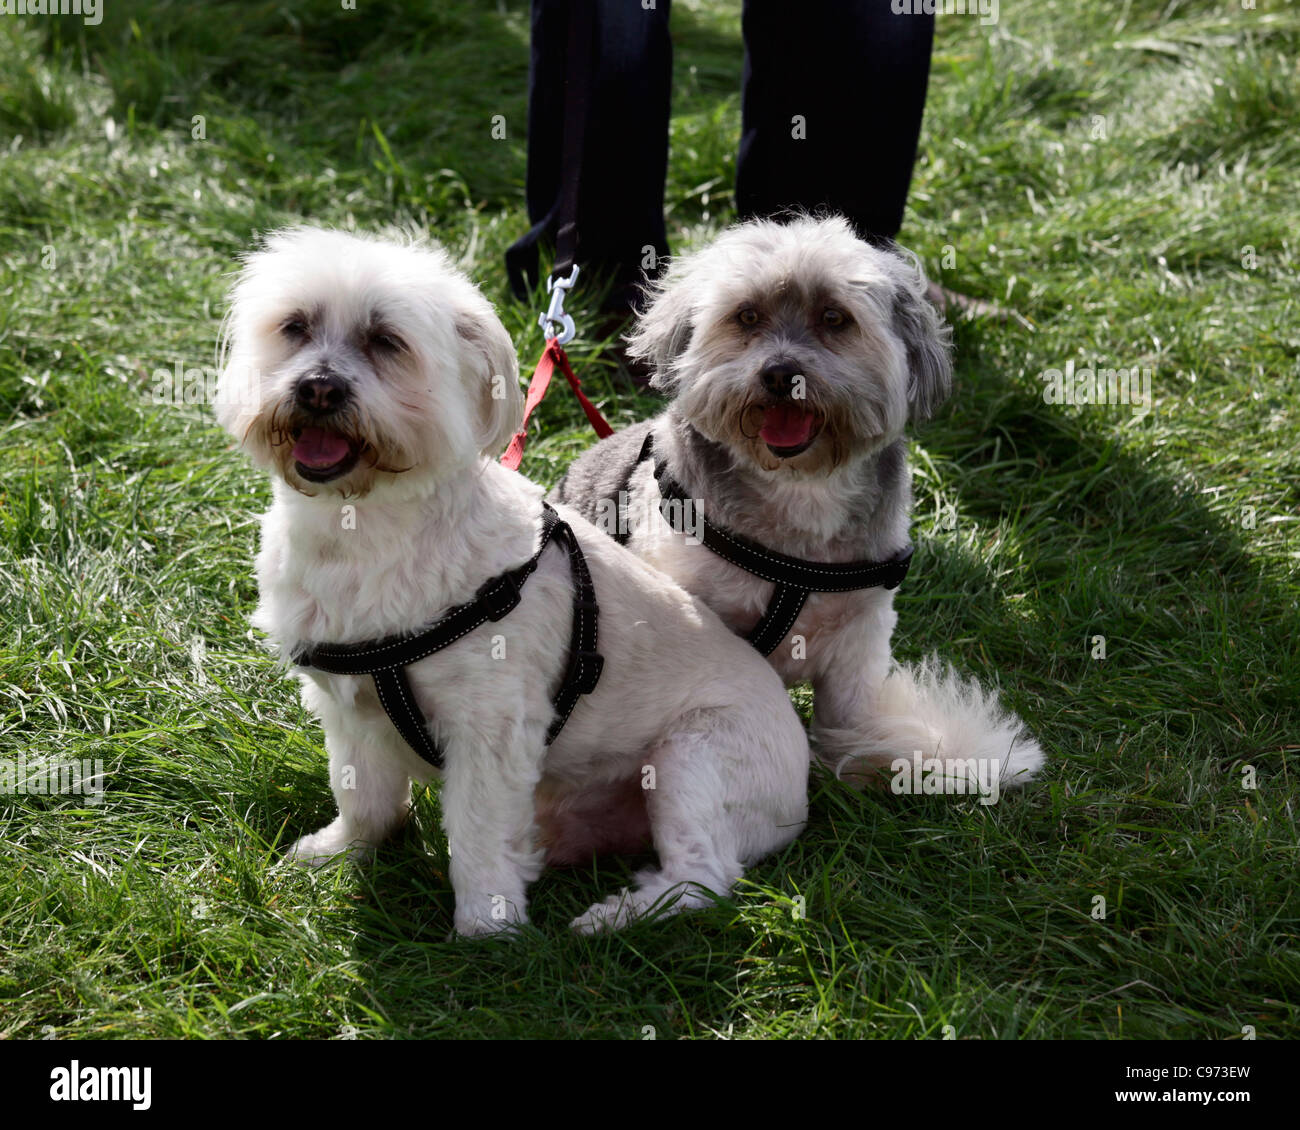 Pair of small dogs at agricultural show - Stock Image